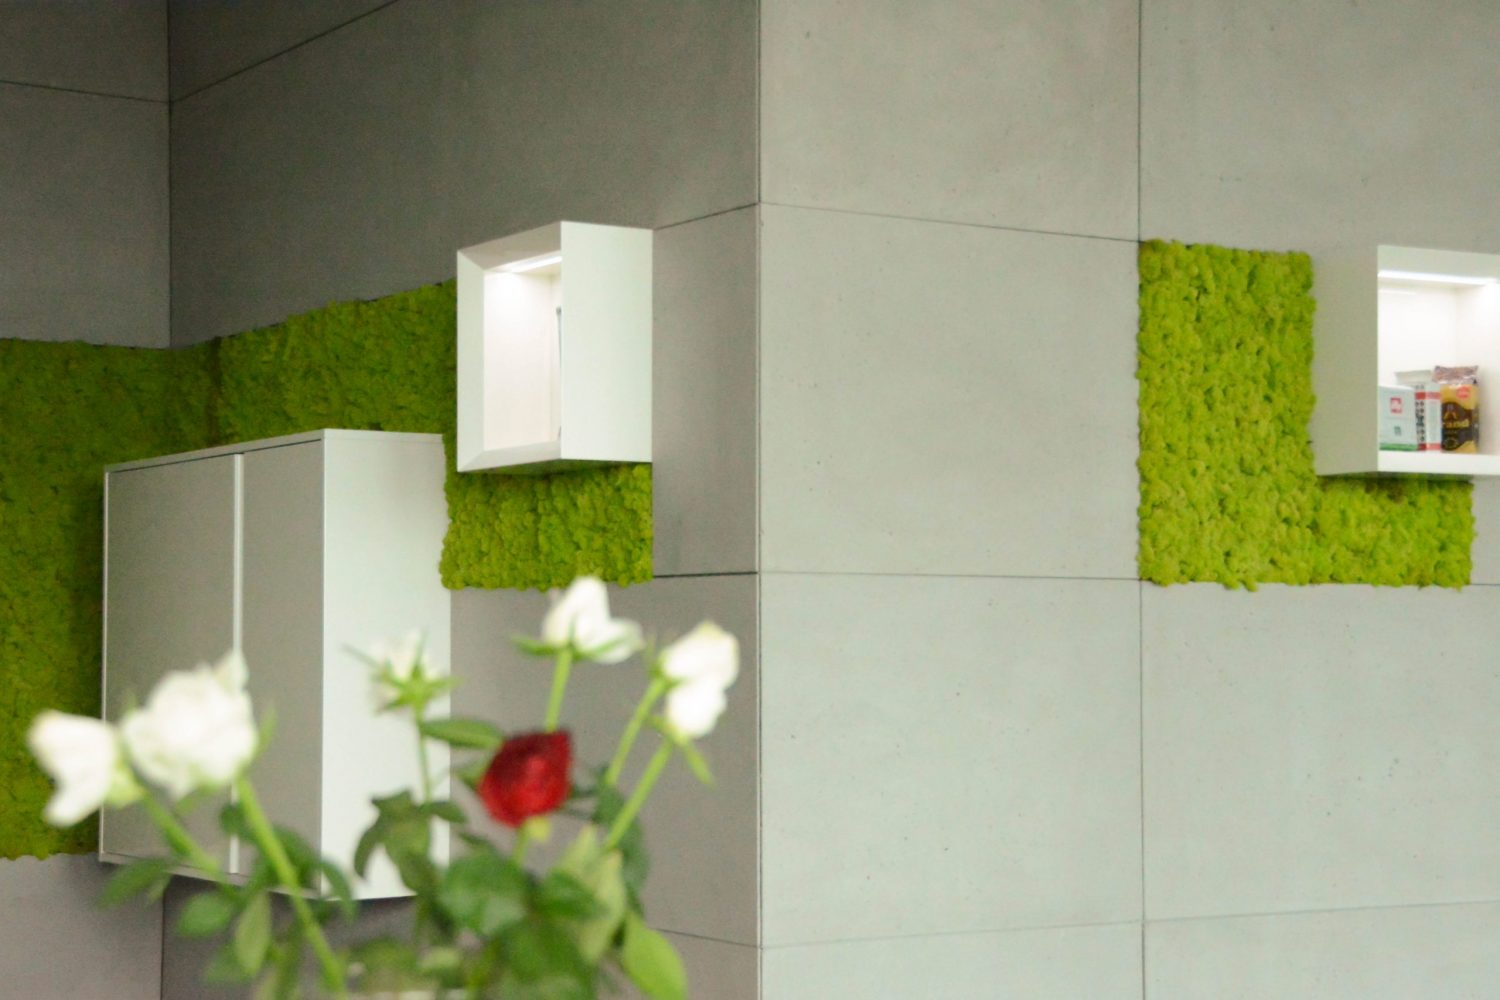 27 Architectural concrete wall finishes